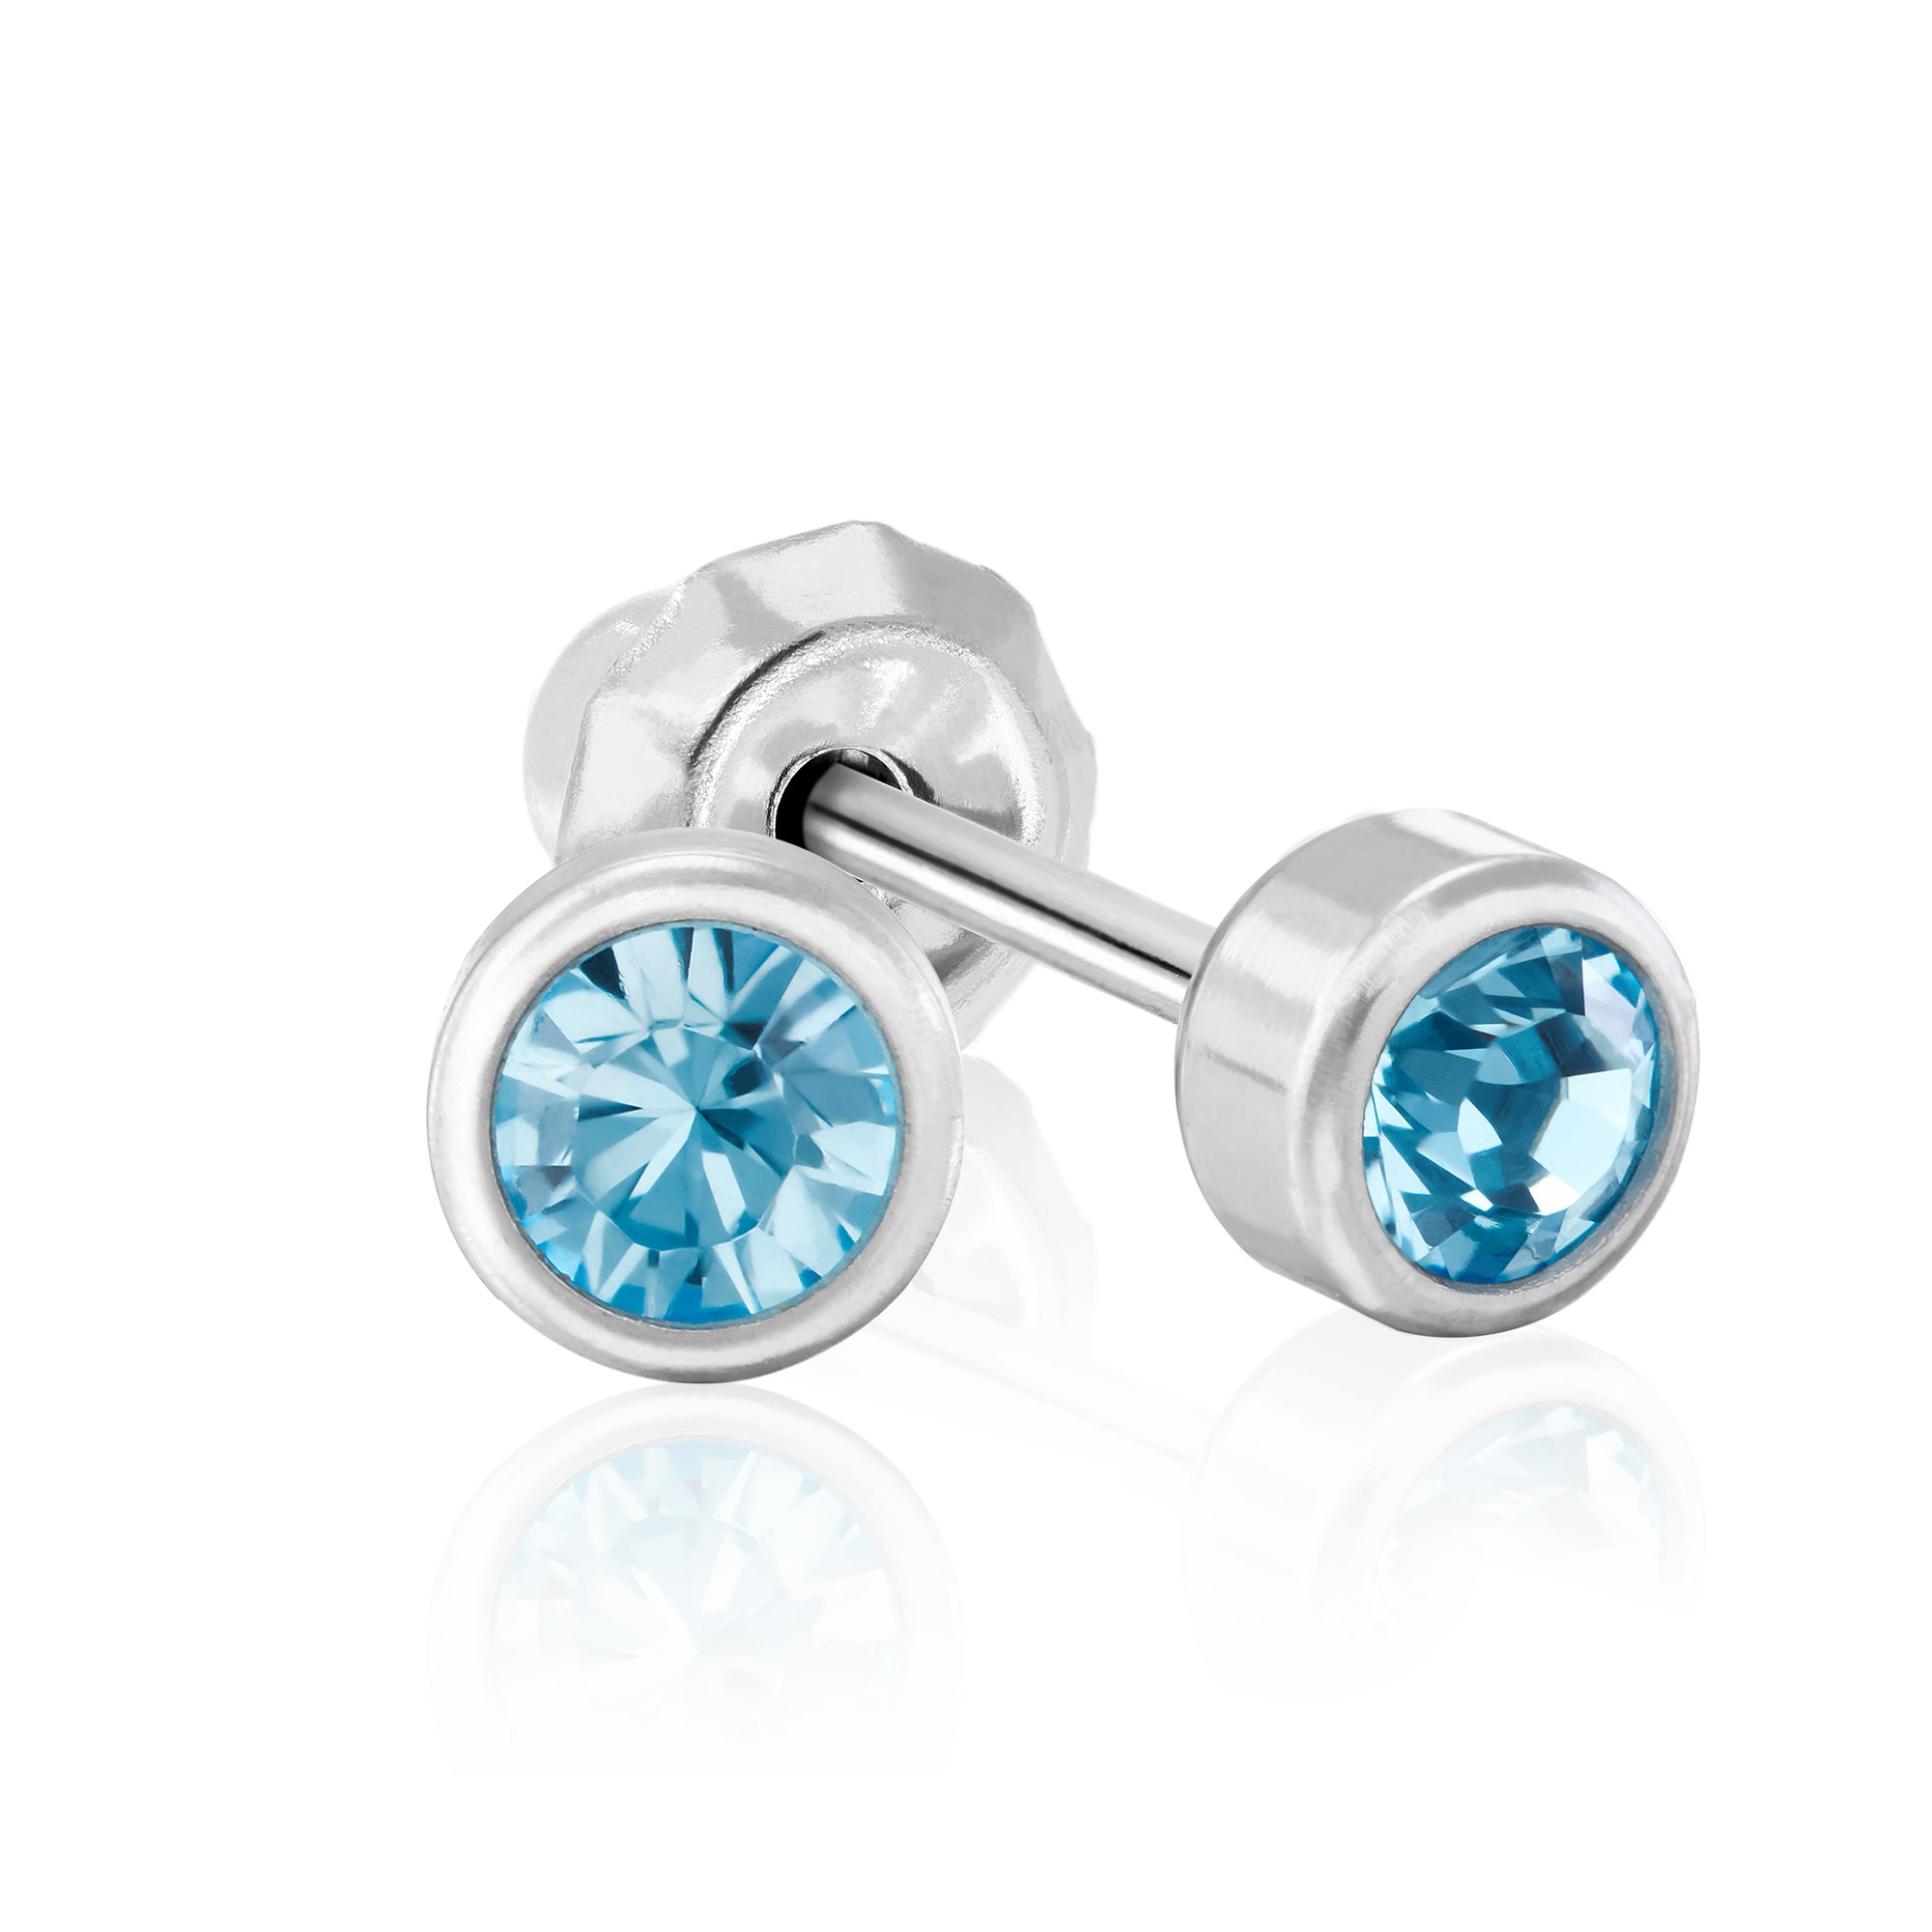 Stainless Steel Medical Grade 4mm Blue Crystal Piercing Studs